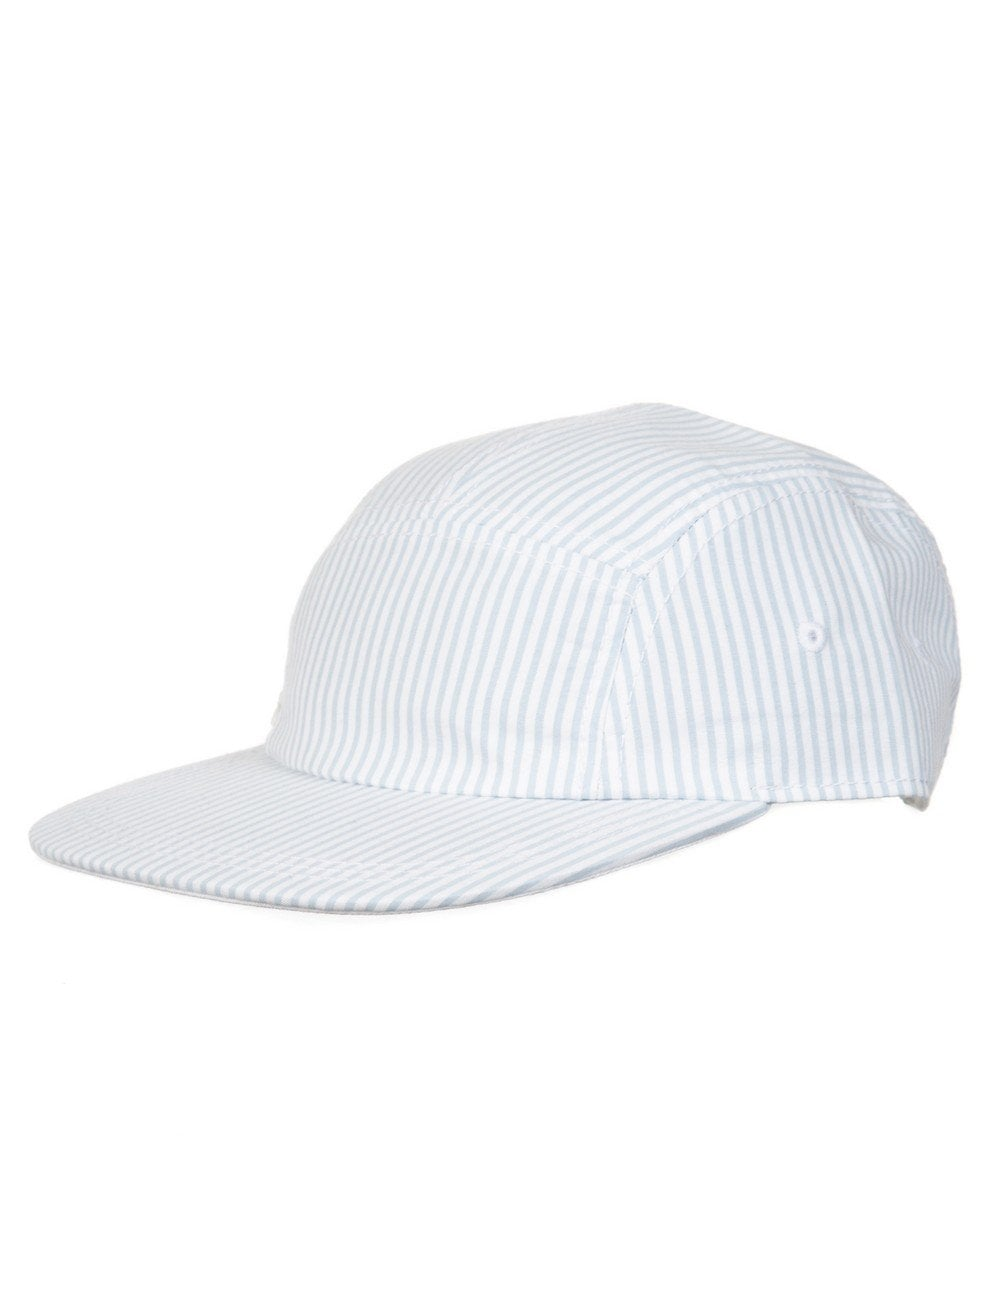 4a09a0026f9 Lacoste Live 5 Panel Hat - Pin White - Accessories from Fat Buddha ...